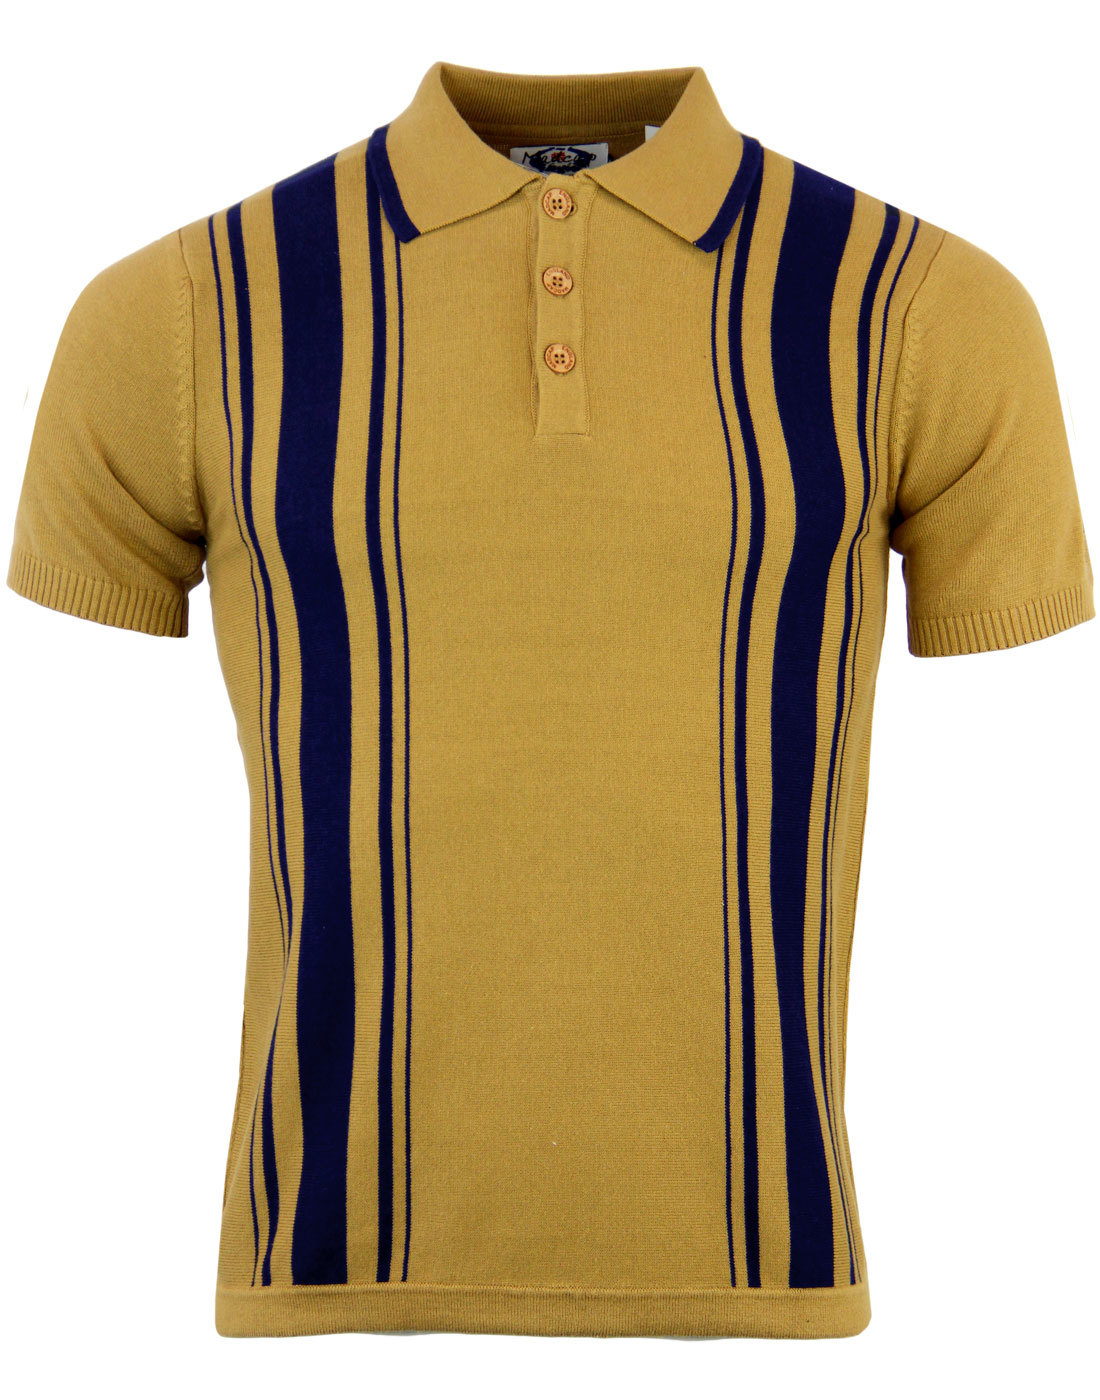 MADCAP ENGLAND RETRO MOD 60s STRIPED POLO